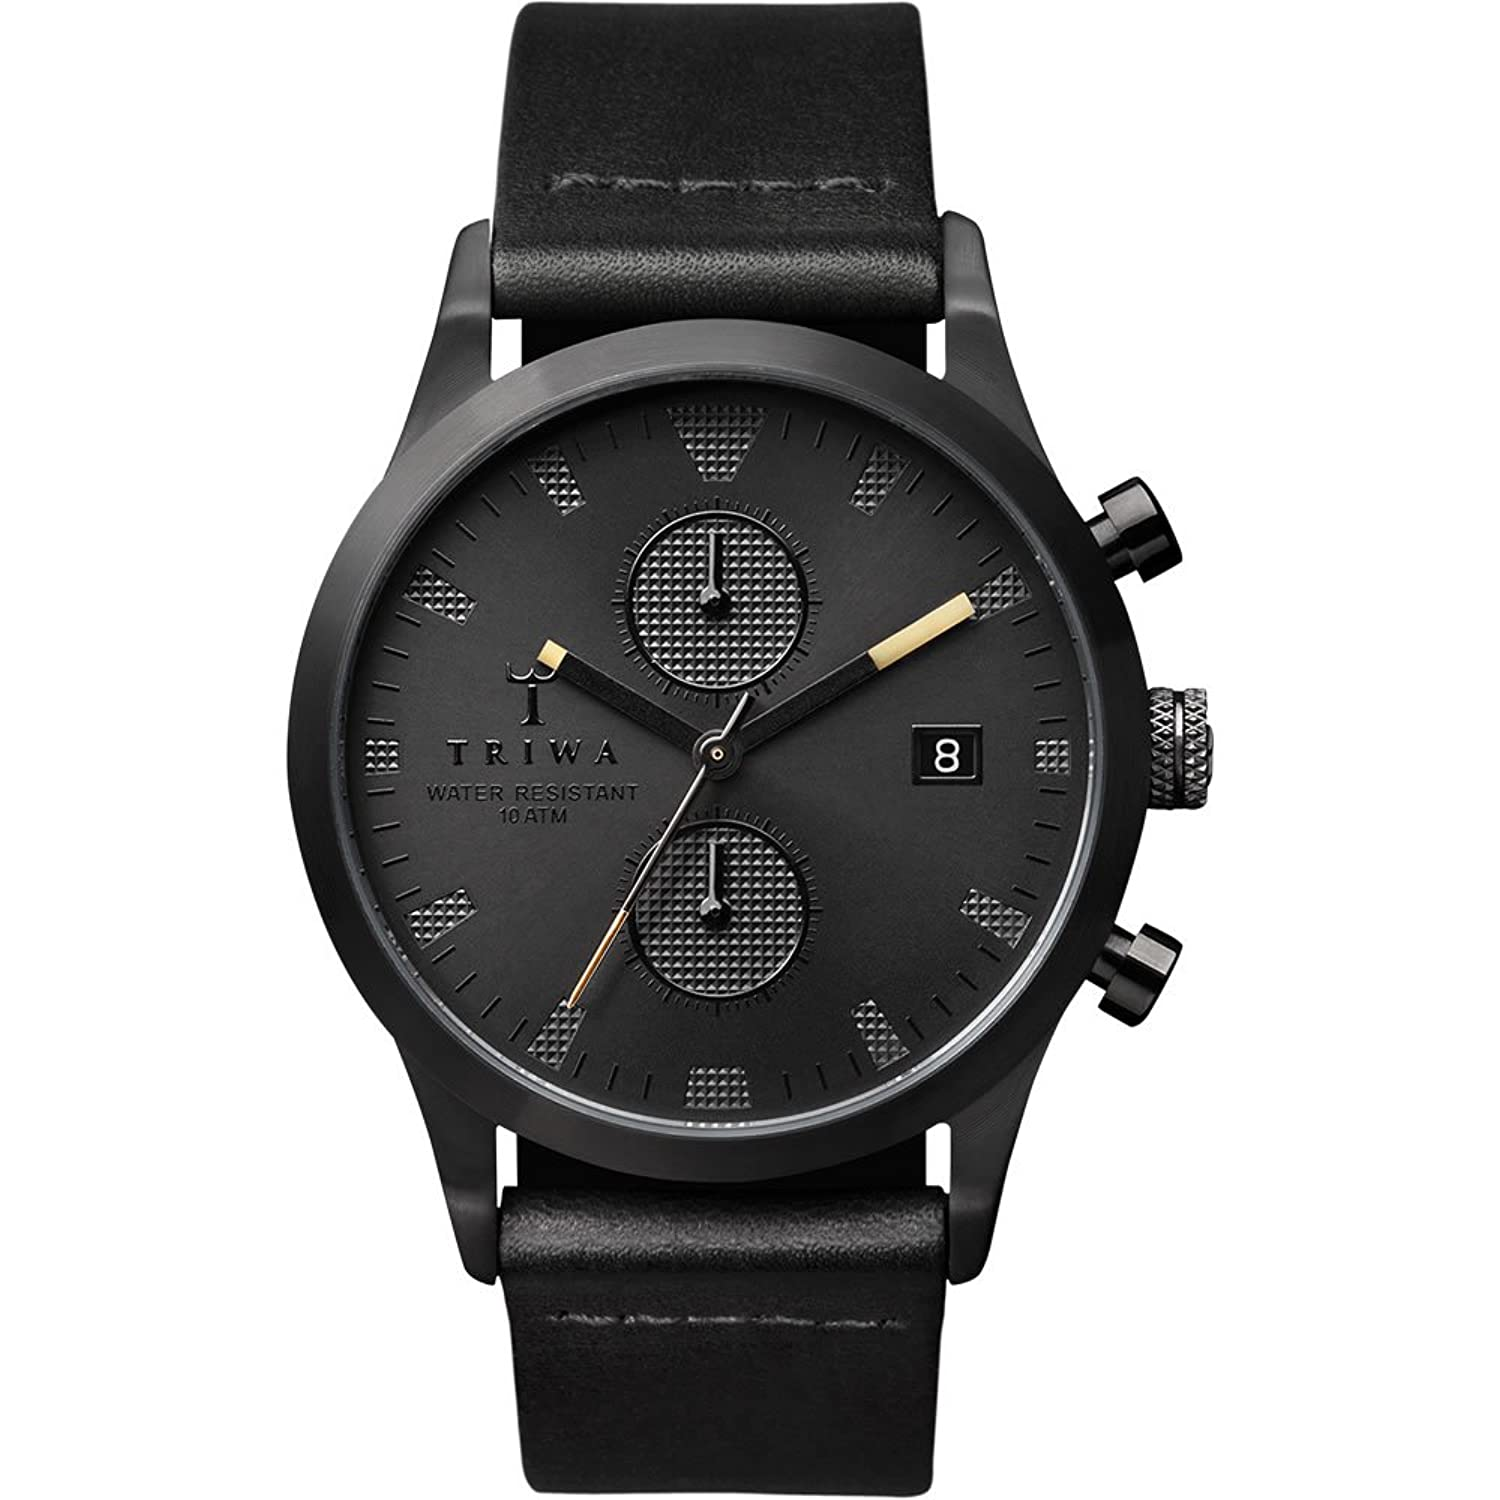 Triwa Watch - Sort of Black Chrono - Black Classic